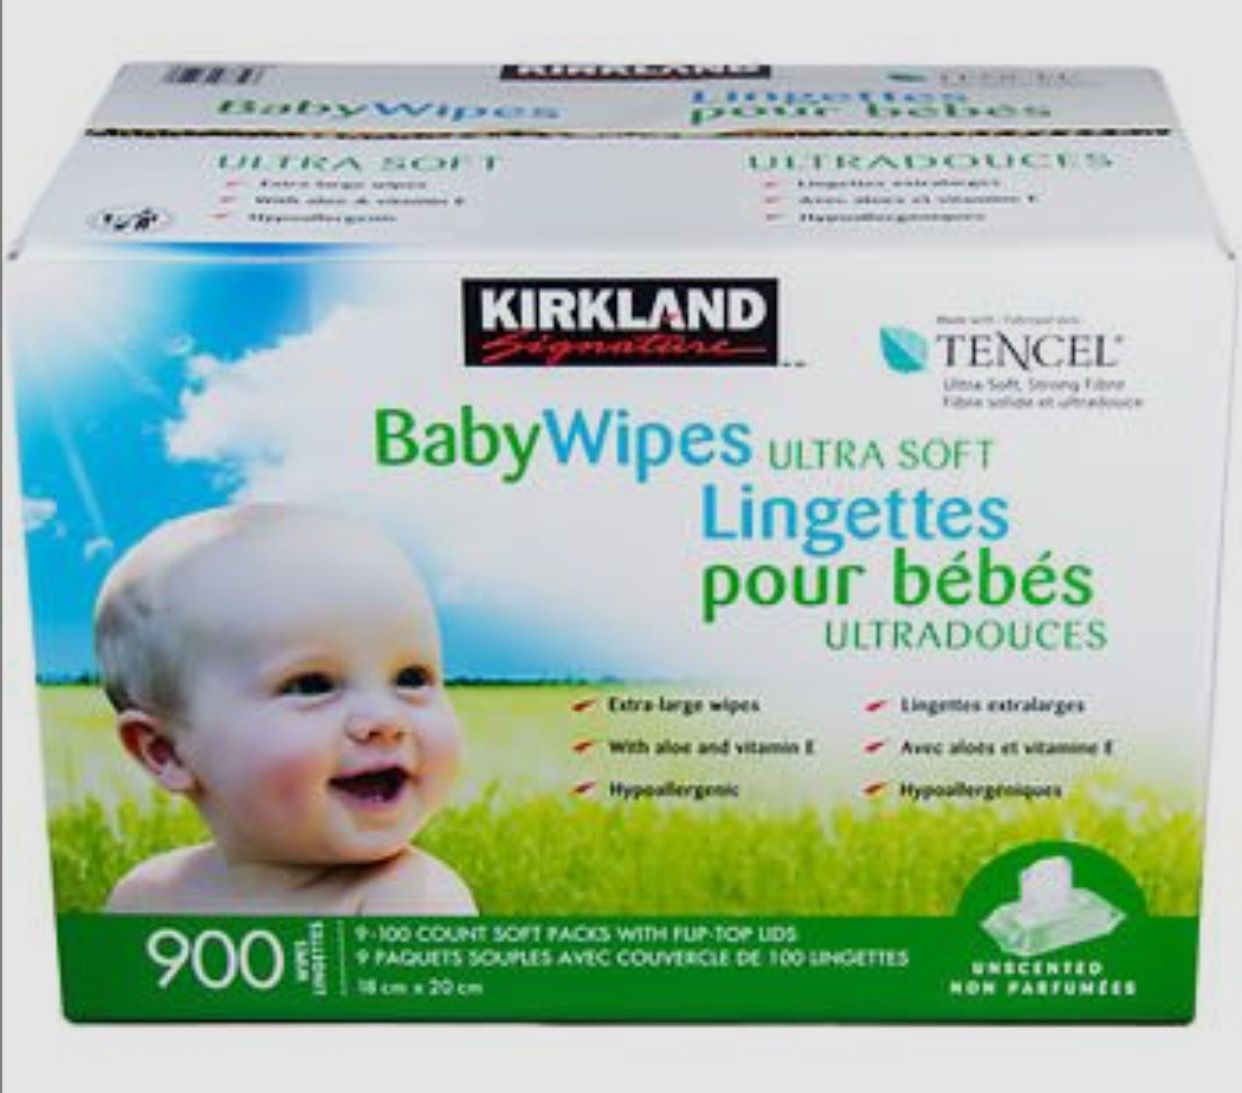 Lingettes Pour Bebe Kirkland Costco Baby Wipes Baby Towel Wipes